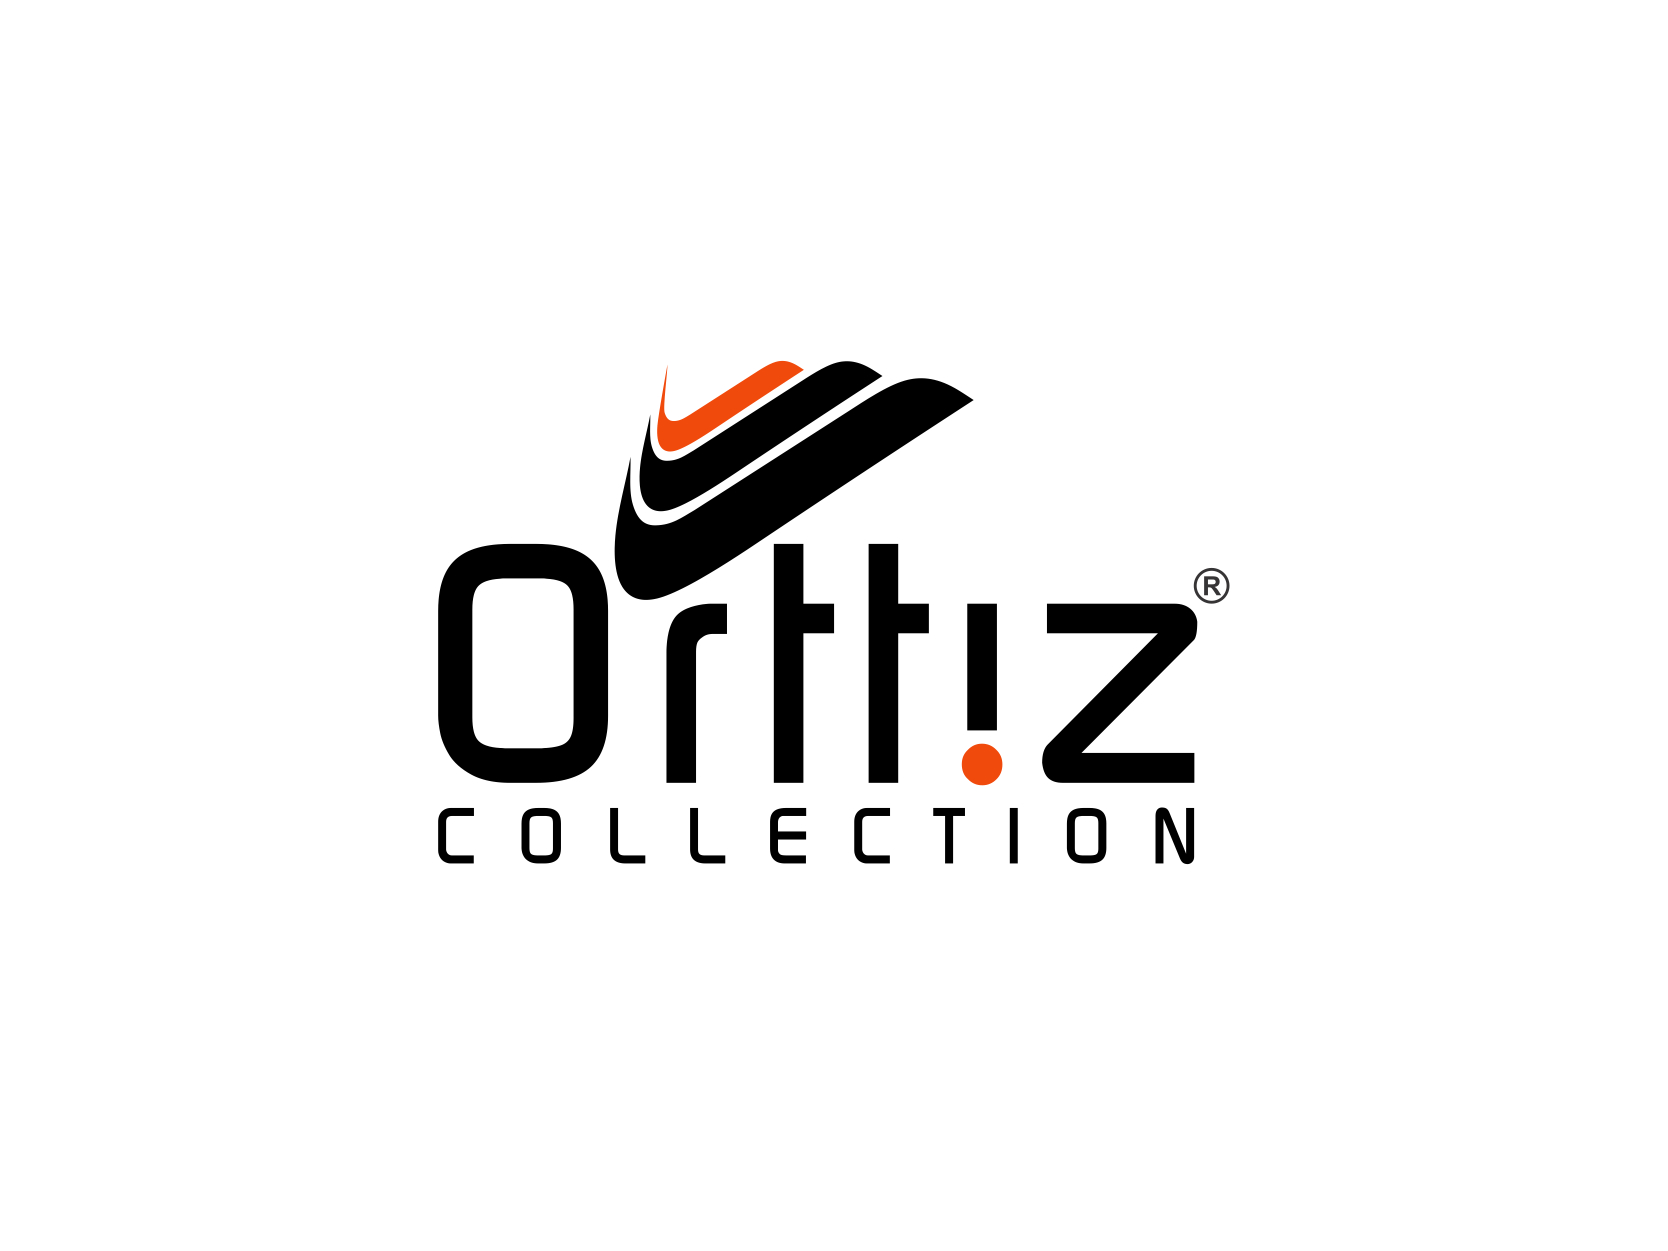 Orttiz Collection